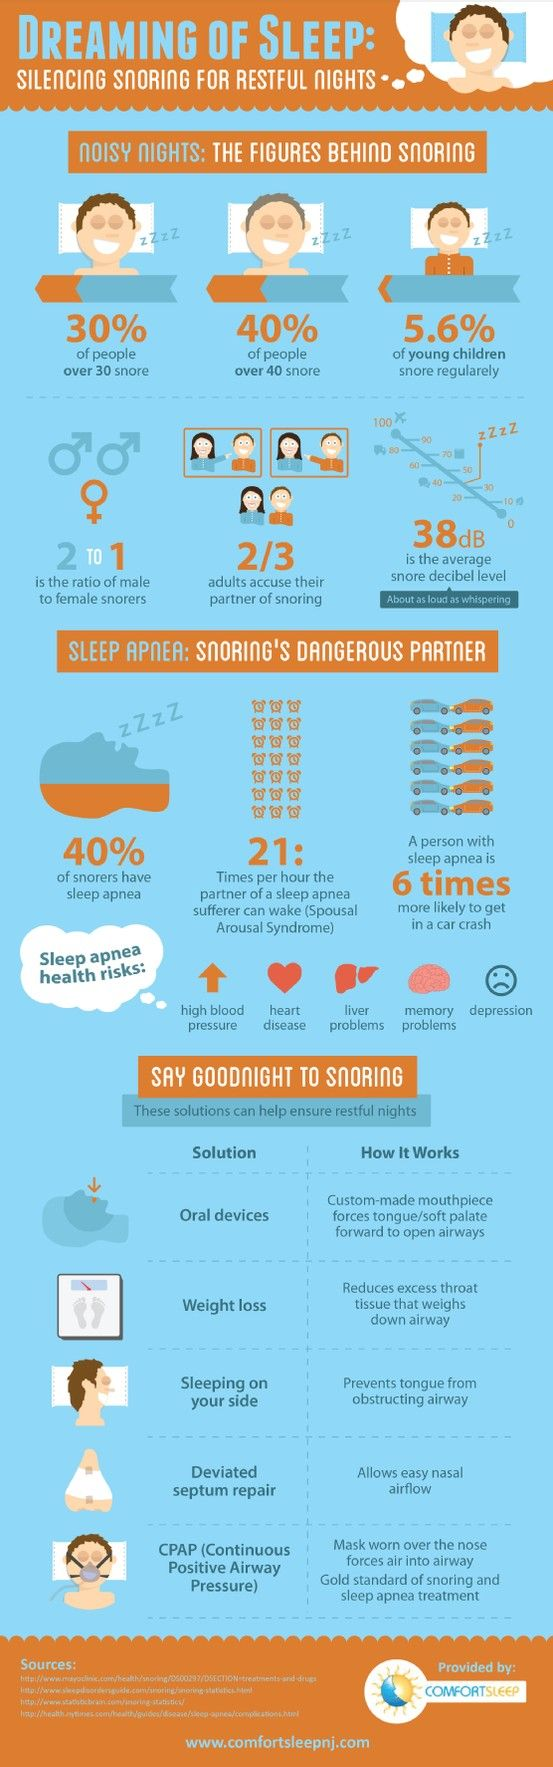 A continuous positive airway pressure (CPAP) mask can be worn over the nose to prevent snoring and provide the wearer with a better night's rest. This infographic from a Monmouth County sleep center has more treatment option information. Source: http://www.comfortsleepnj.com/666596/2013/03/19/dreaming-of-sleep-silencing-snoring-for-restful-nights-infographic.html